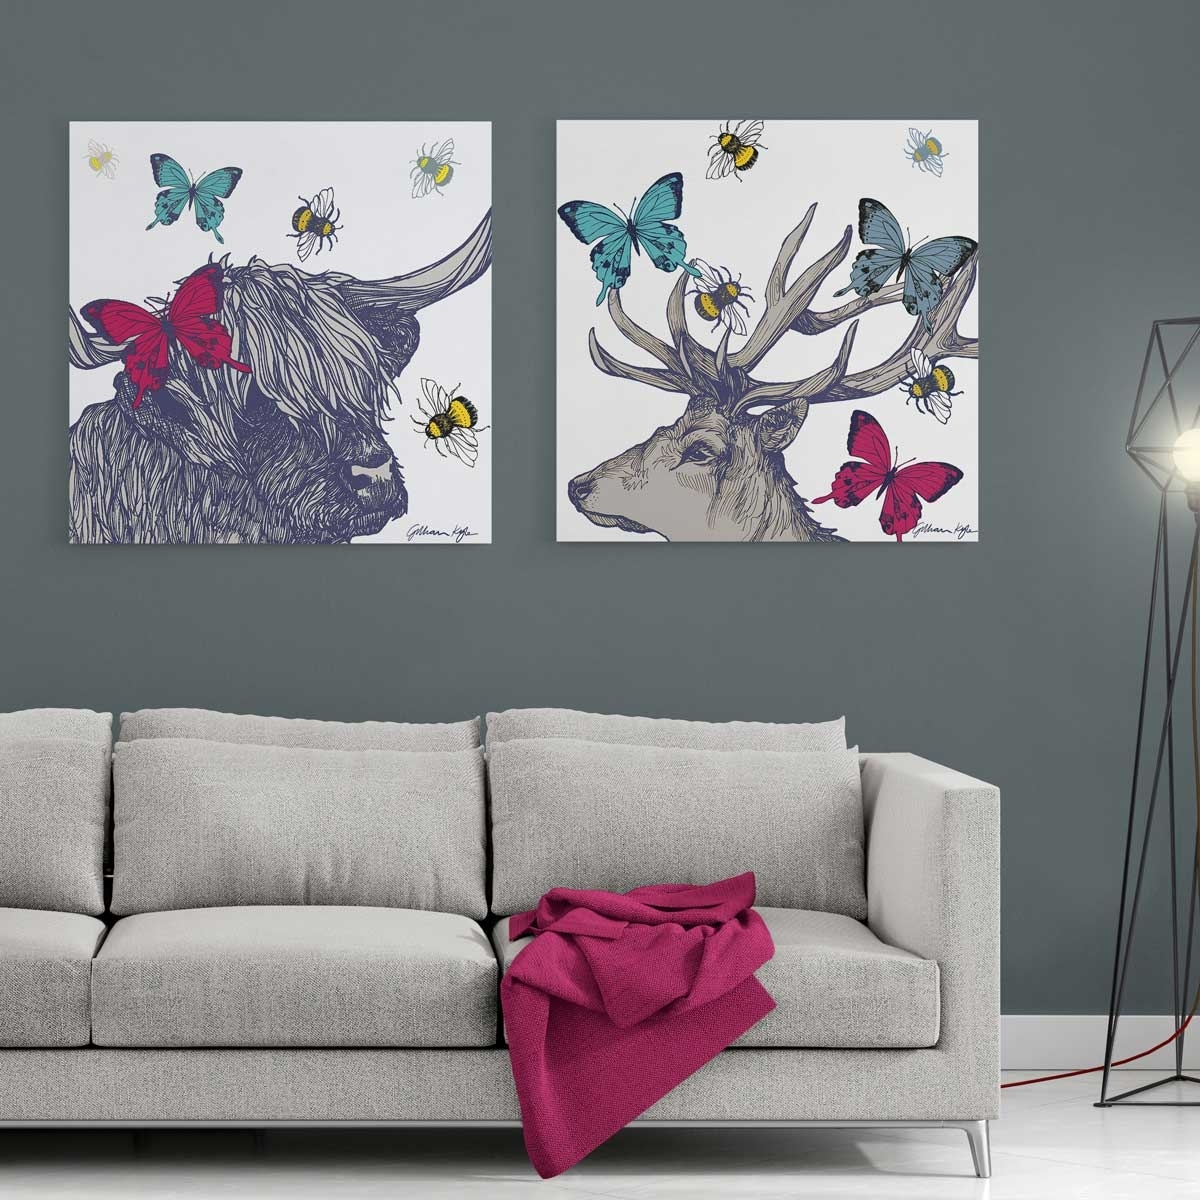 Gillian Kyle Scottish Wall Art Stag And Lola Set Of Two Canvas Prints Inside Latest Canvas Wall Art Pairs (View 6 of 15)